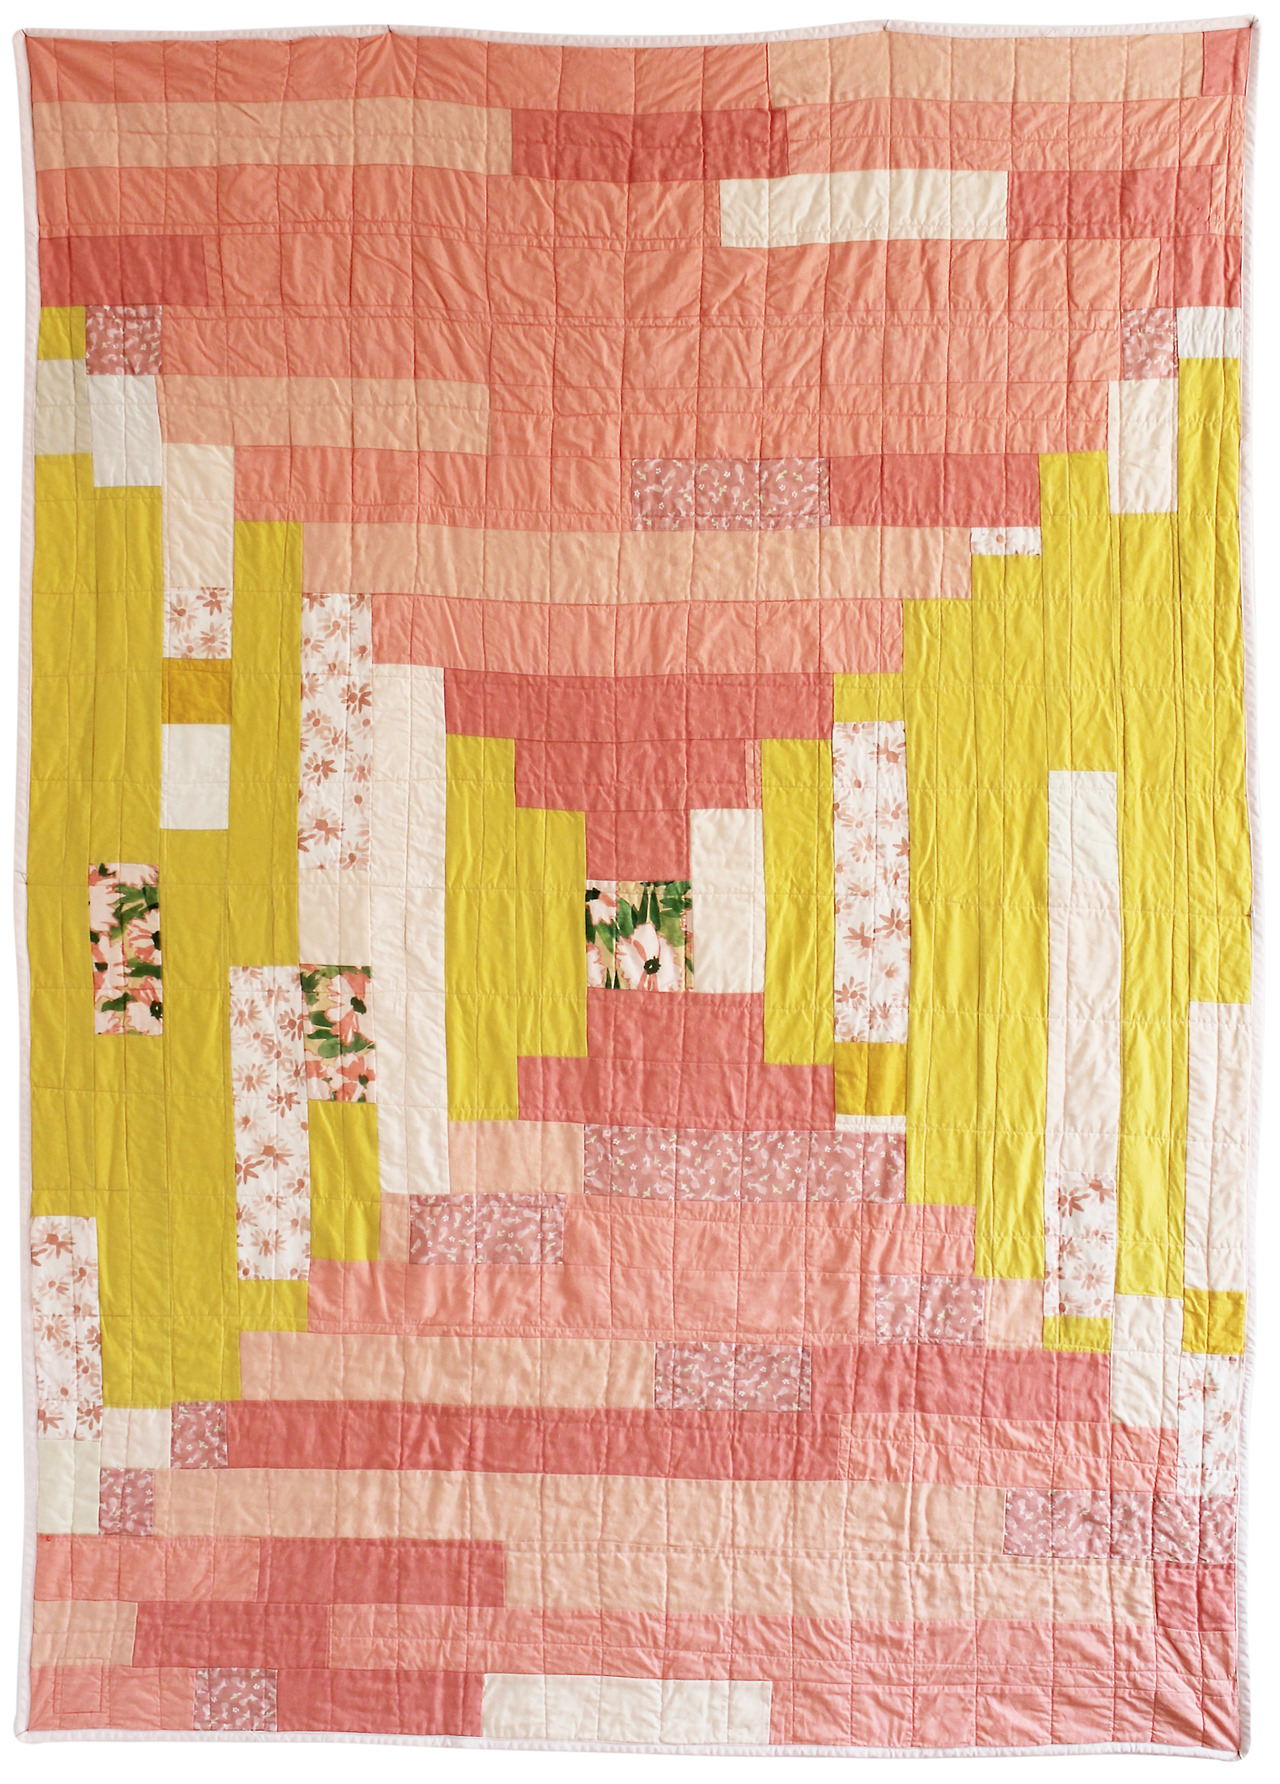 "Summer Day Quilt - 52"" x 75""   I crave these colors in the Summertime. The juicy peaches and sunny yellows are at the same time theraputic and energizing. I started this modern take on the Courthouse Steps motif with a precious square of my all time favorite Leah Goren print, and from there it grew outwards. Along the way it became a study in perspective. As I added strips, I imagined the cheer it could bring to a home on a cloudy day. I give you now my snap shot of Summer, and hope your Summer is going well too (if you live in the Northern Hemisphere).  Here .   - Gina Rockenwagner"